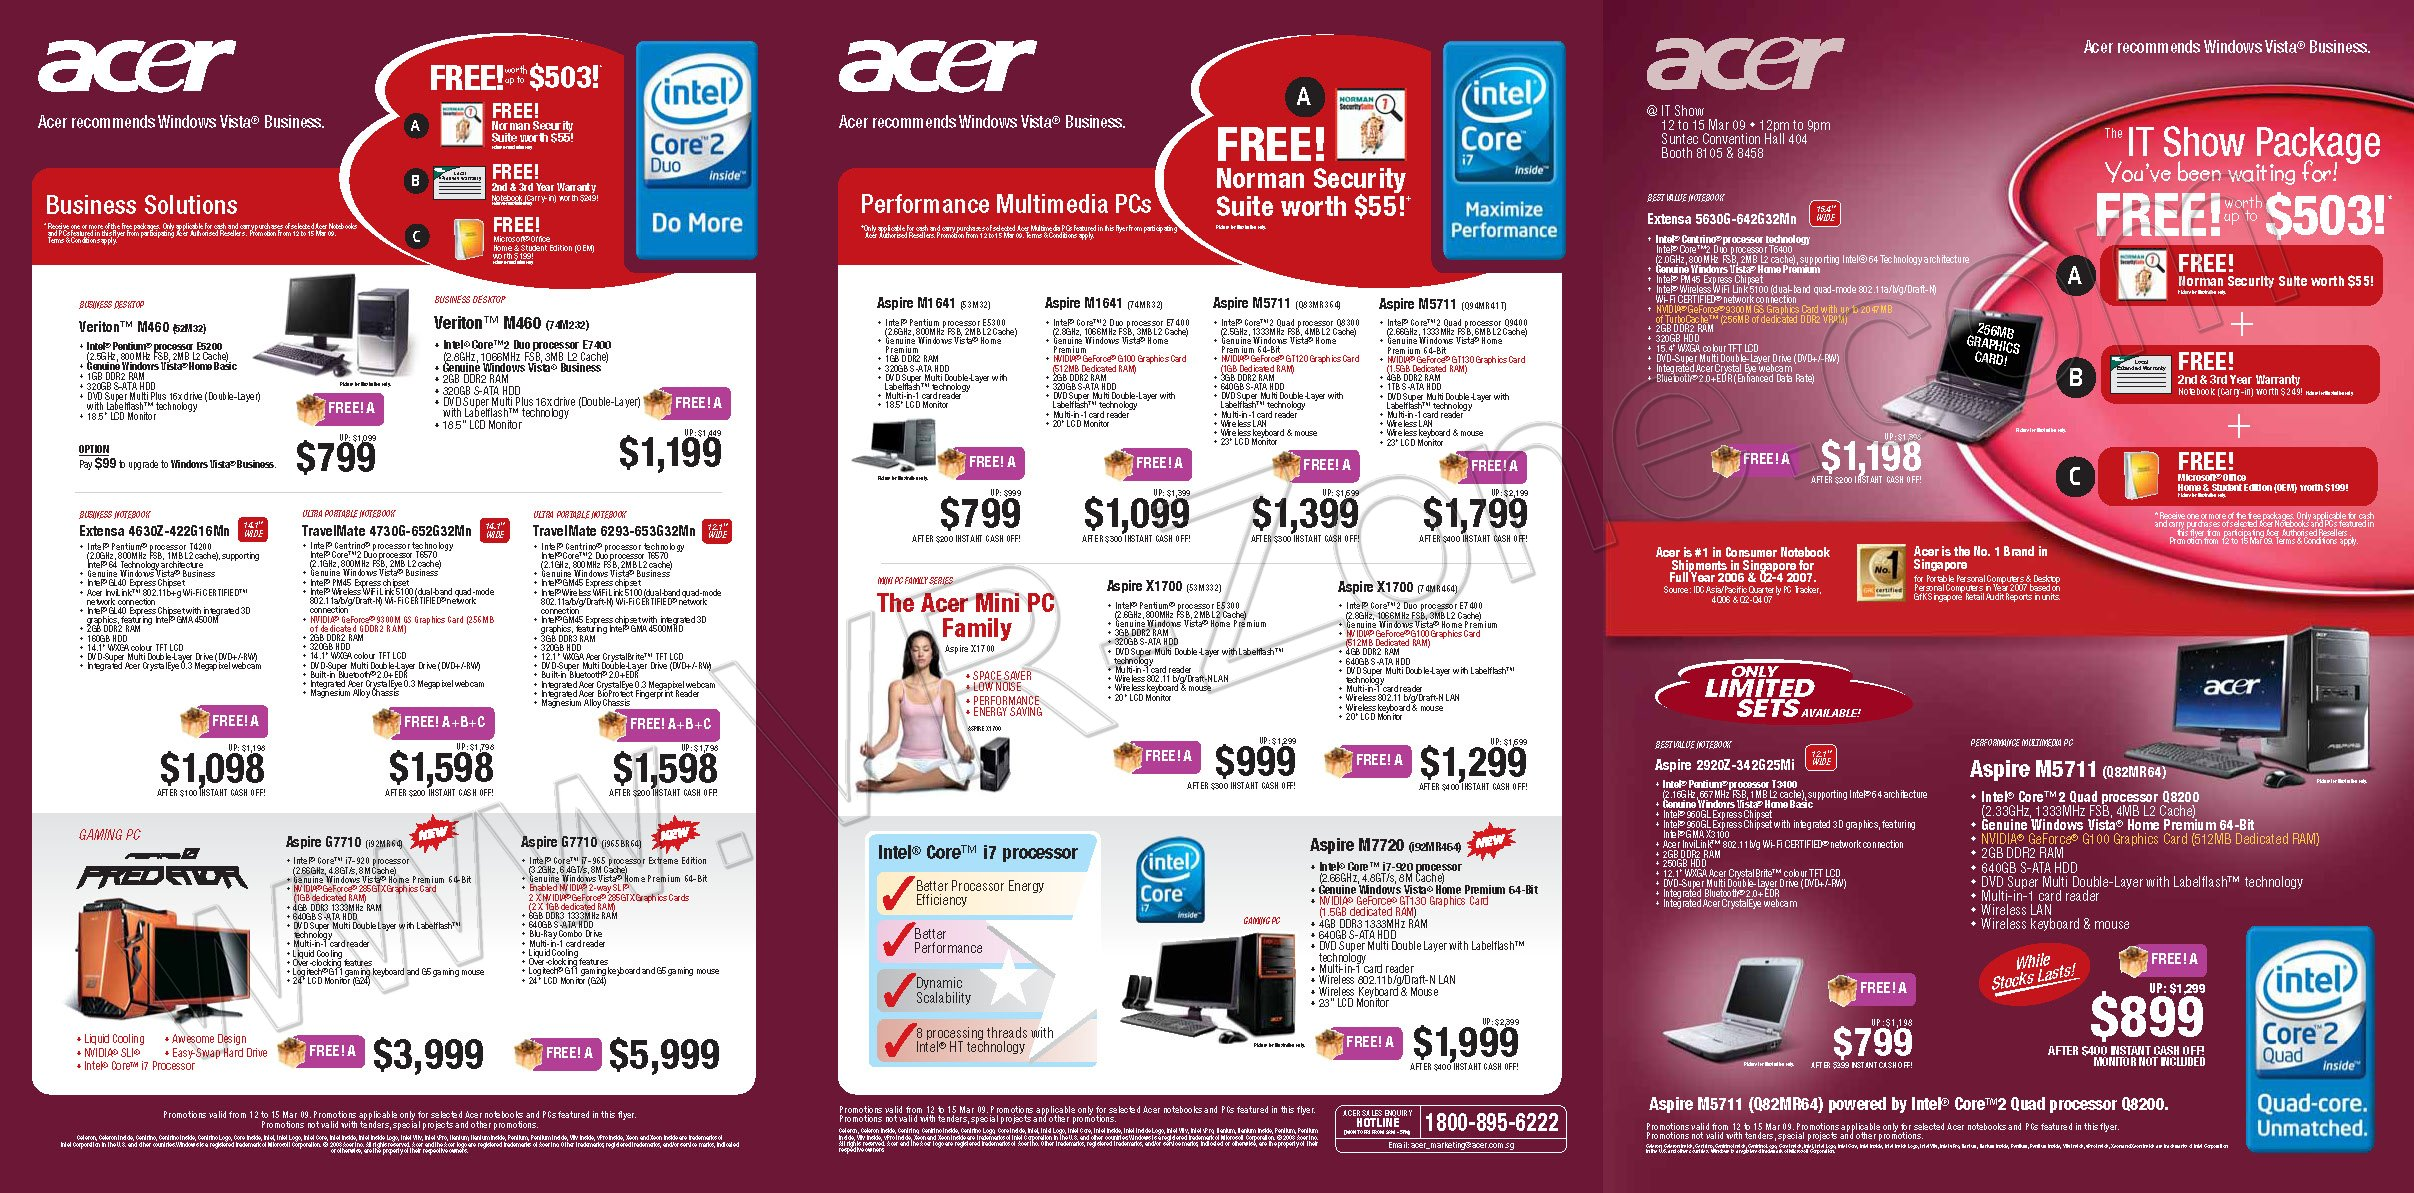 IT Show 2009 price list image brochure of Acer 1 VR-Zone